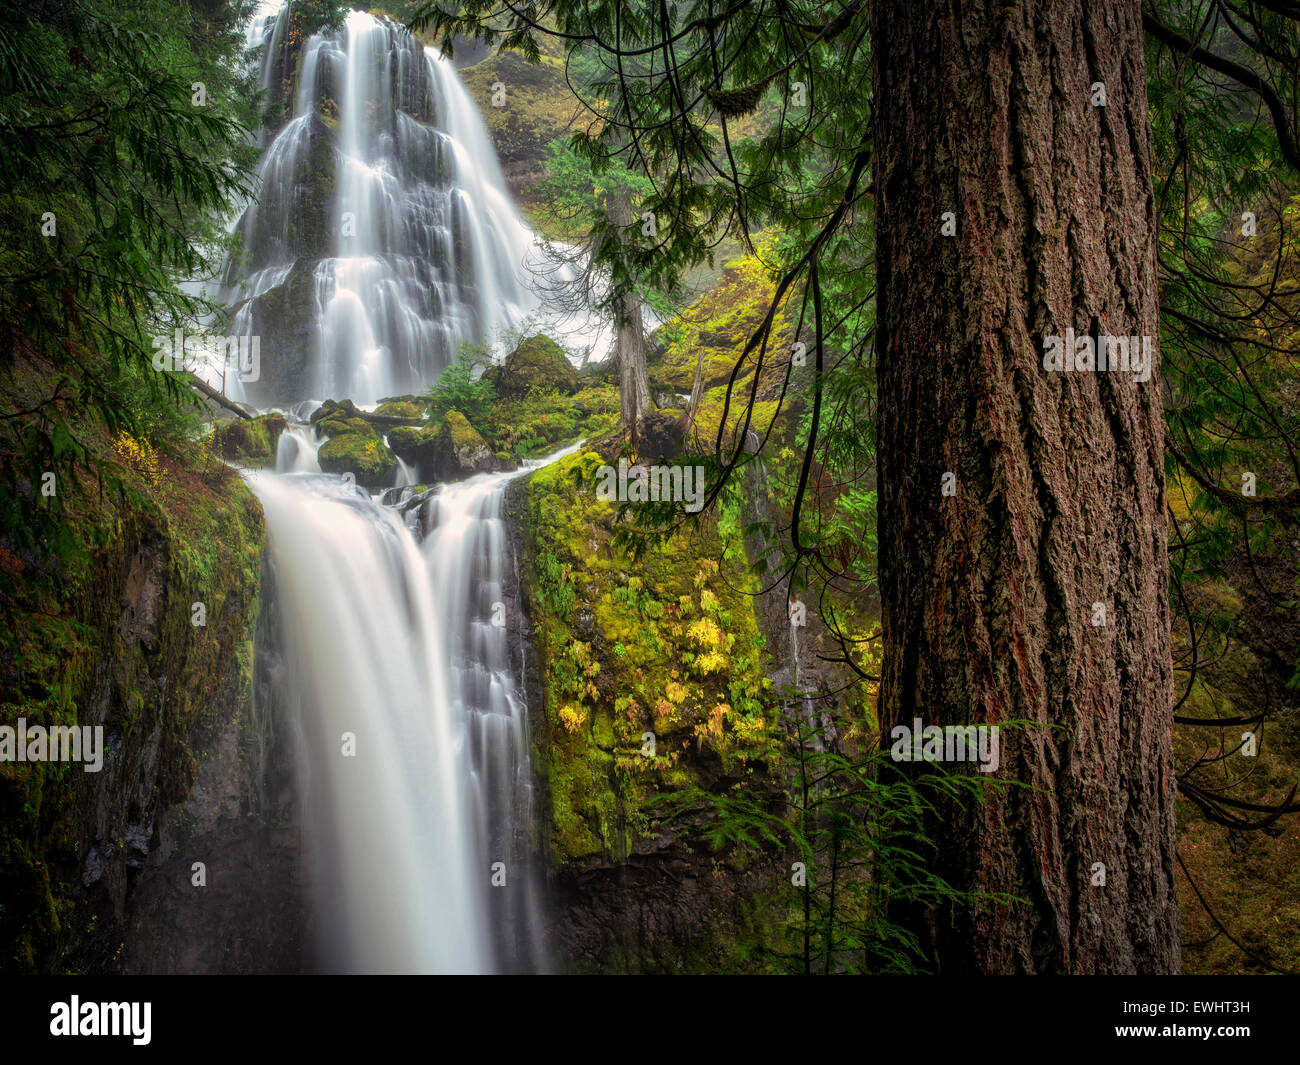 Falls Creek Falls, Washington. - Stock Image